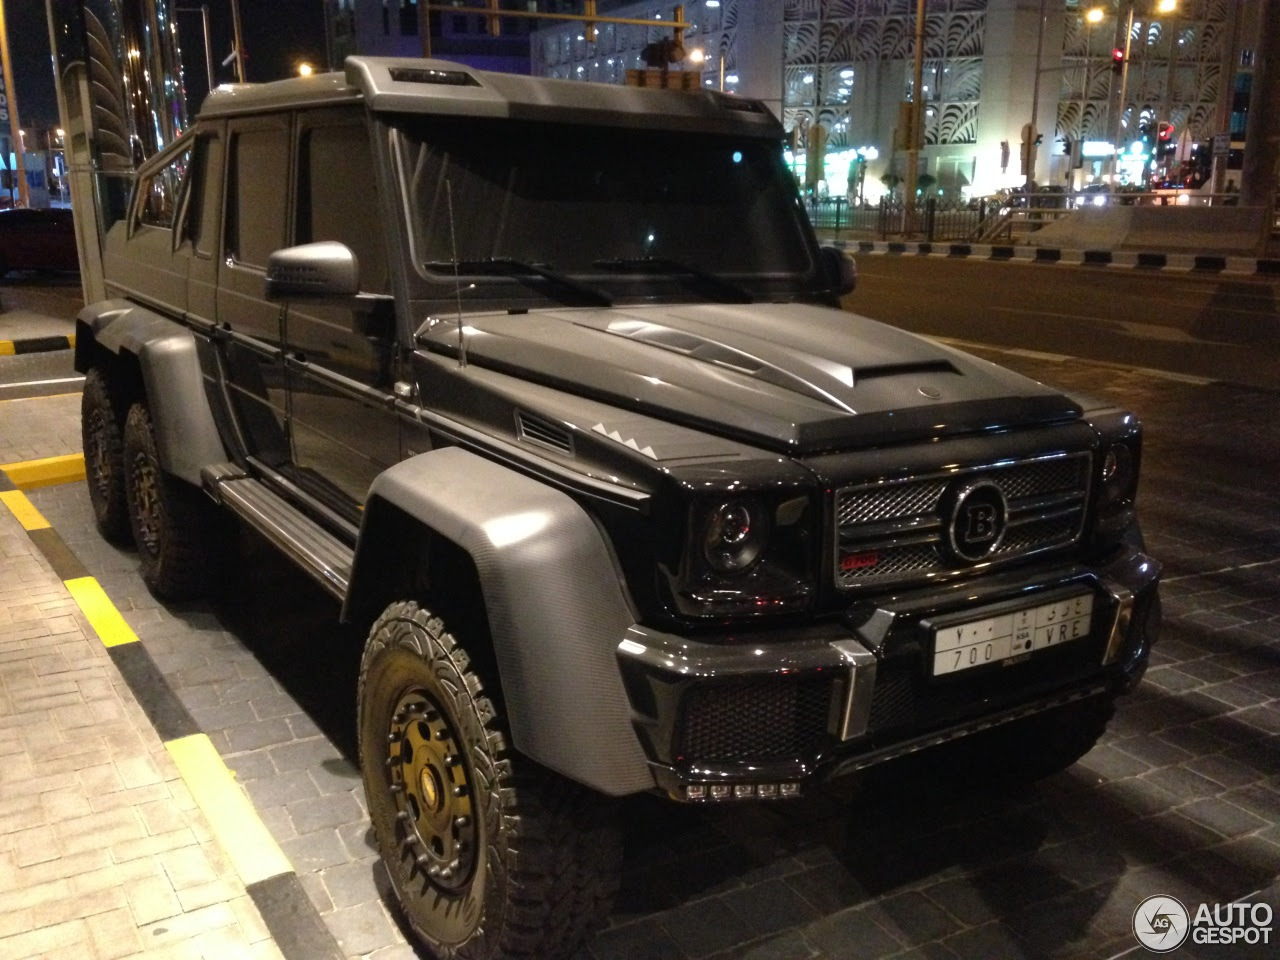 MercedesBenz Brabus B63S 700 6x6  29 December 2015  Autogespot